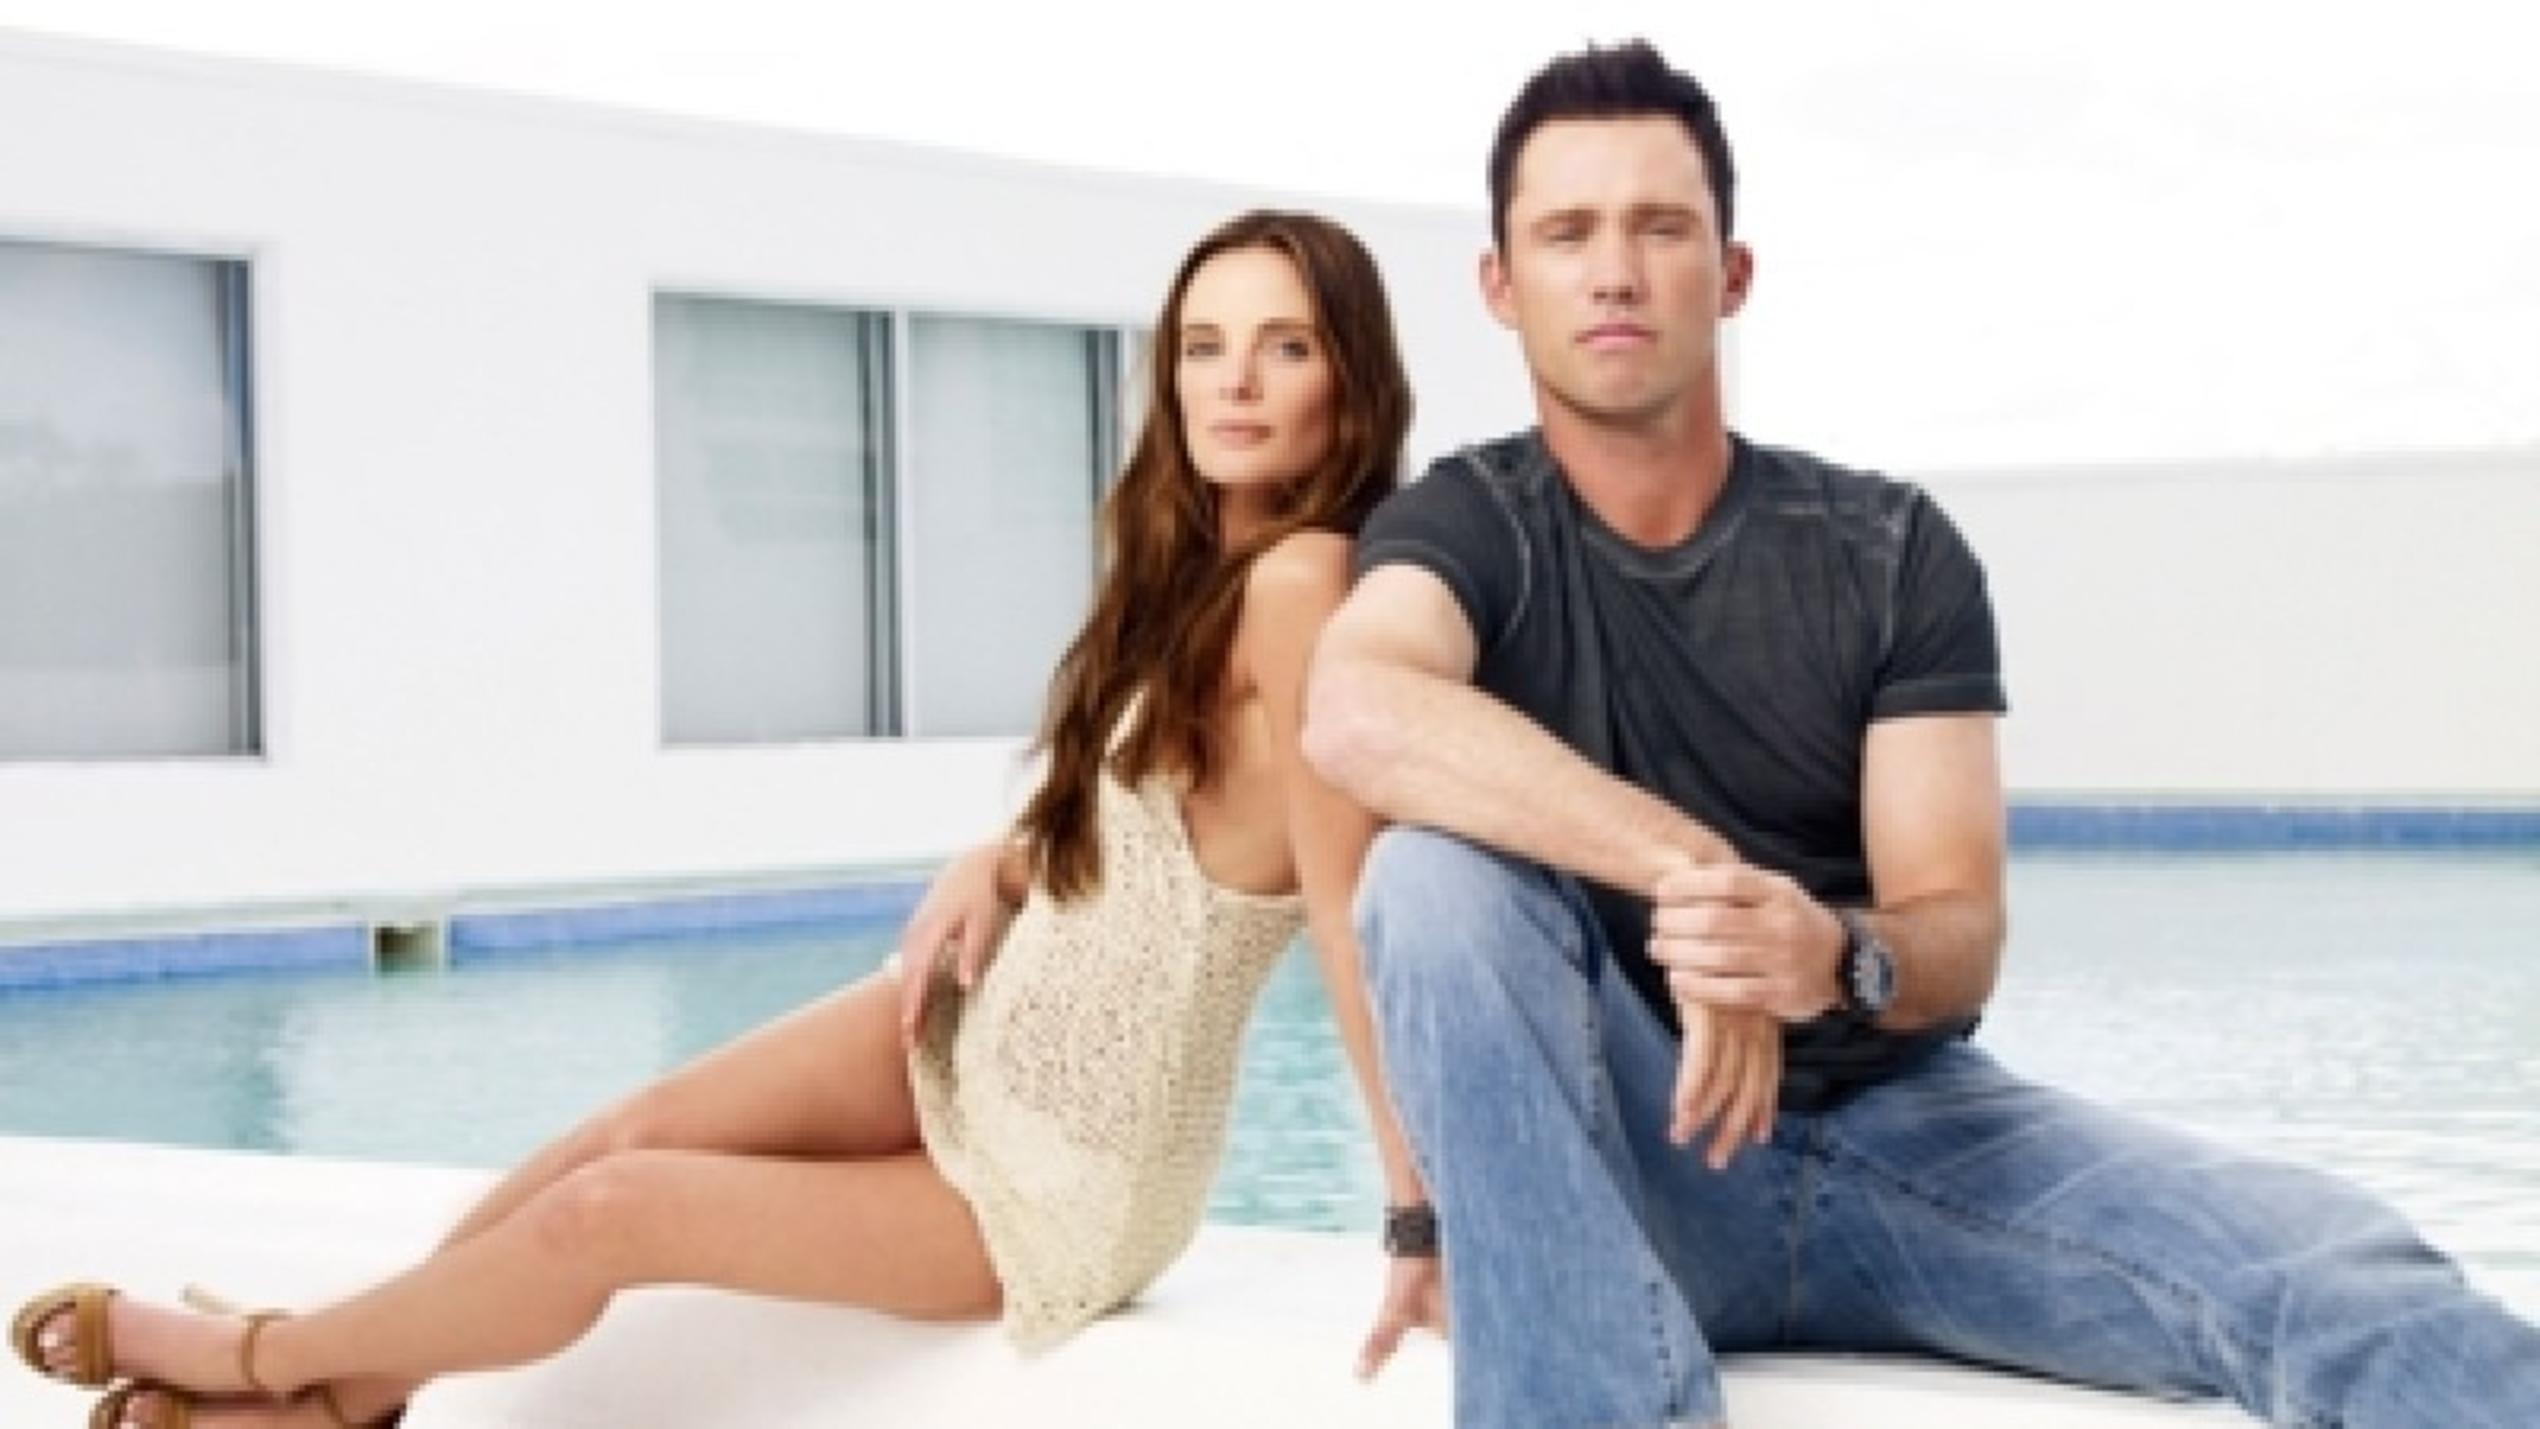 Michael Westen (Jeffery Donovan) (c) VOX/Twentieth Century Fox Film Corporation